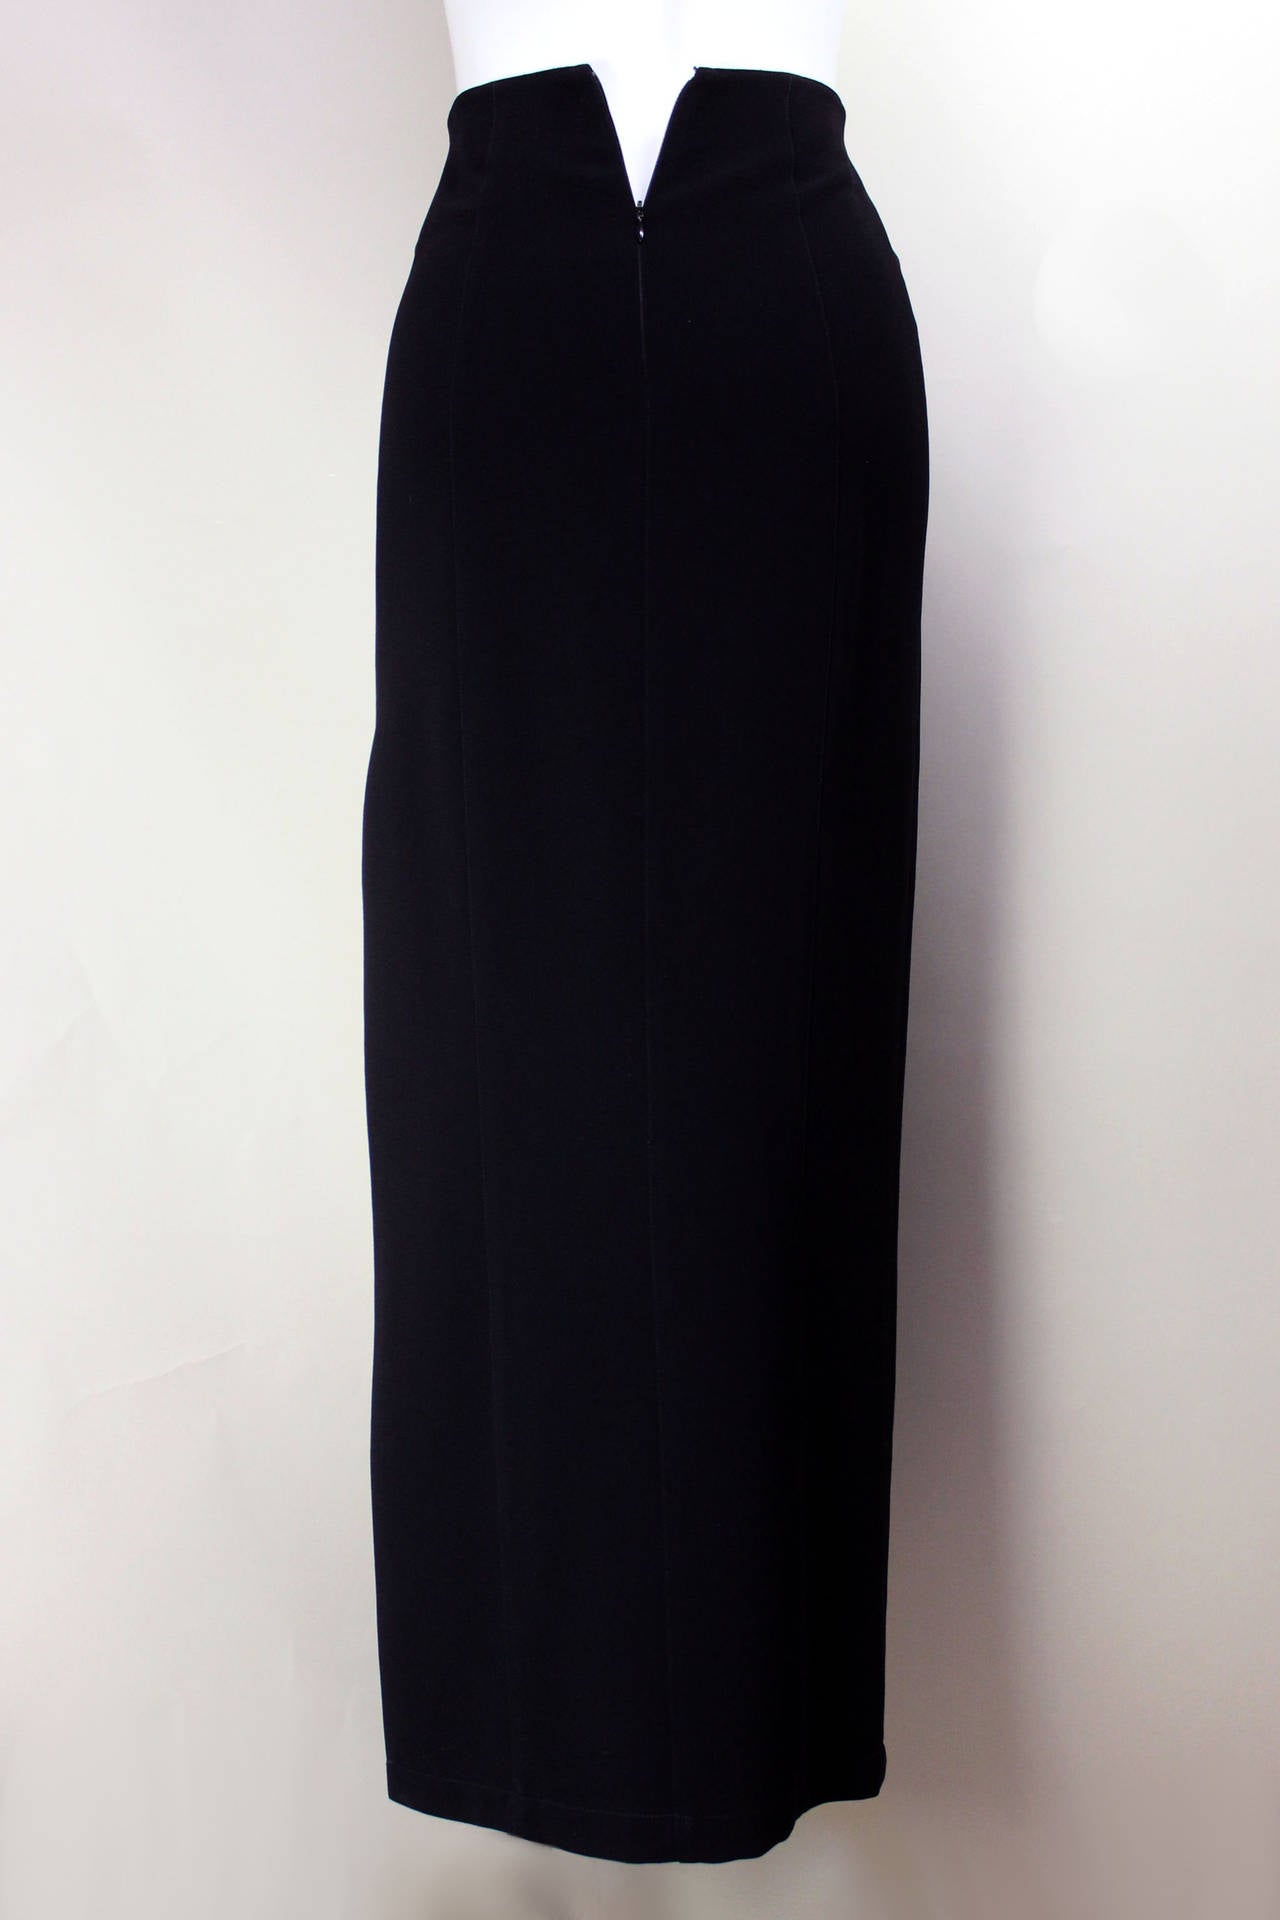 Black 1980s Thierry Mugler Sexy Long Pencil Skirt For Sale